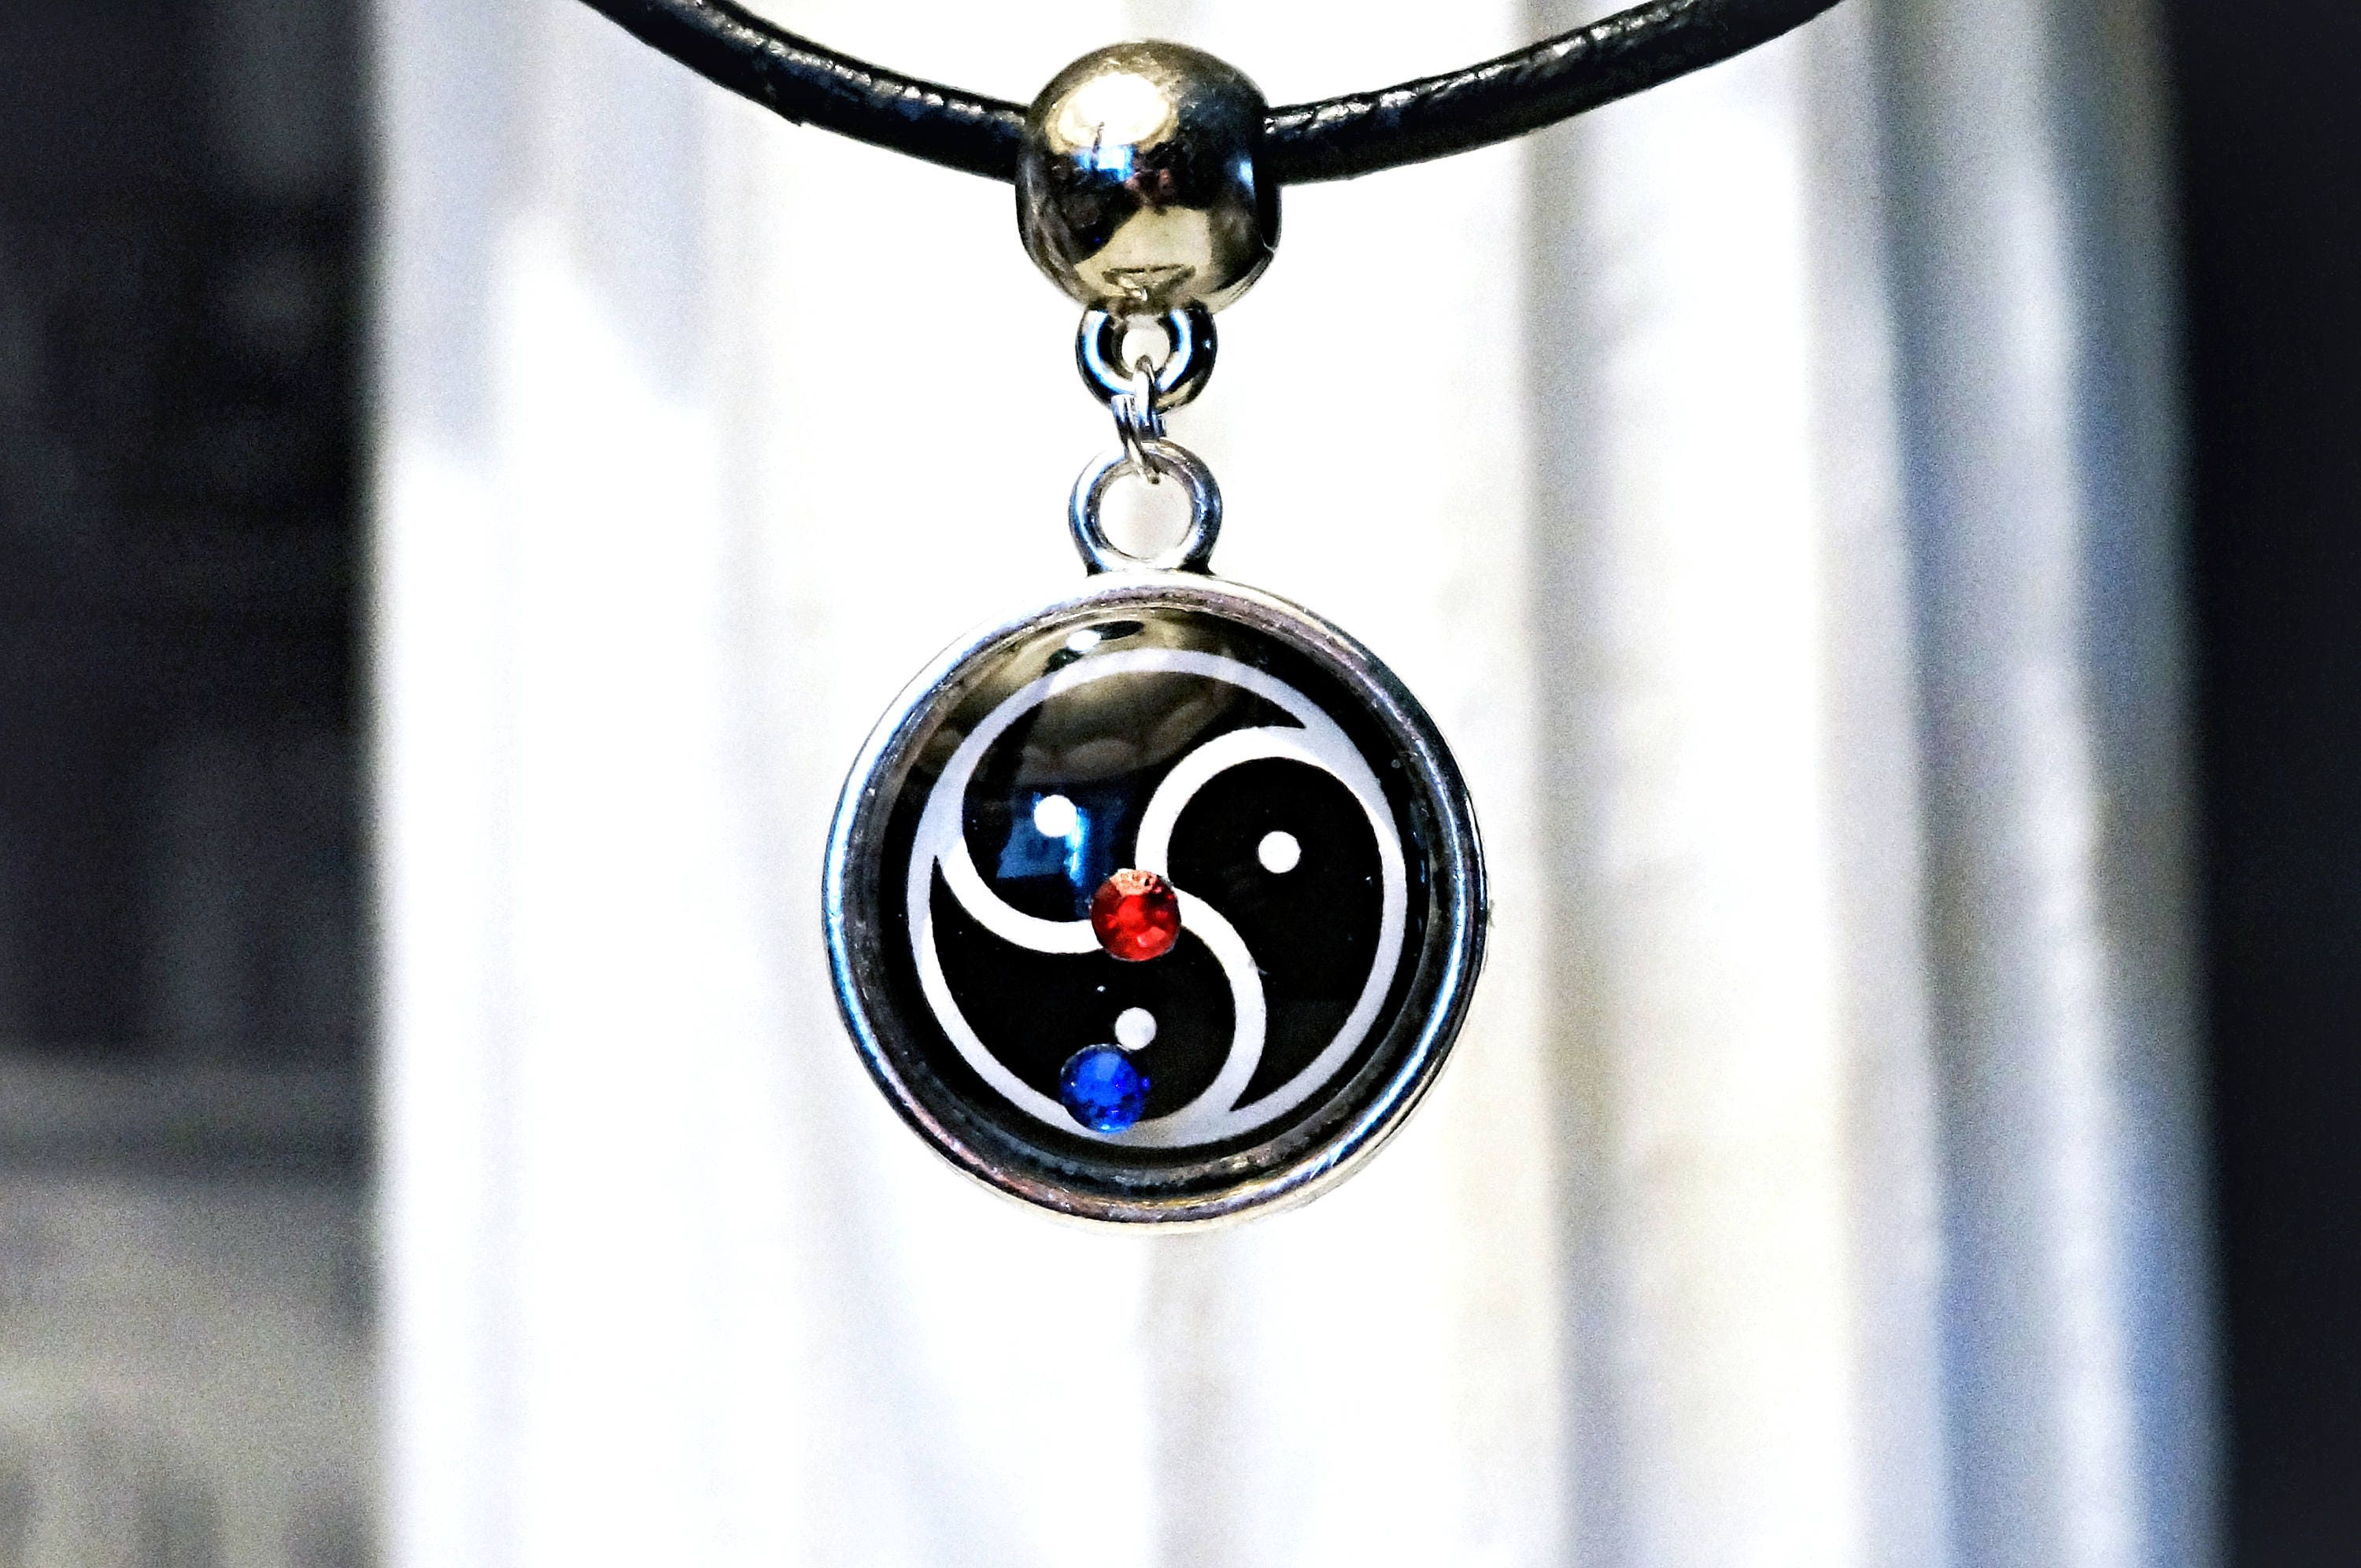 with from druid necklace bc pendant products date england ireland wax gemstone northern circa silver seal triskelion origin irish celtic norther triskele